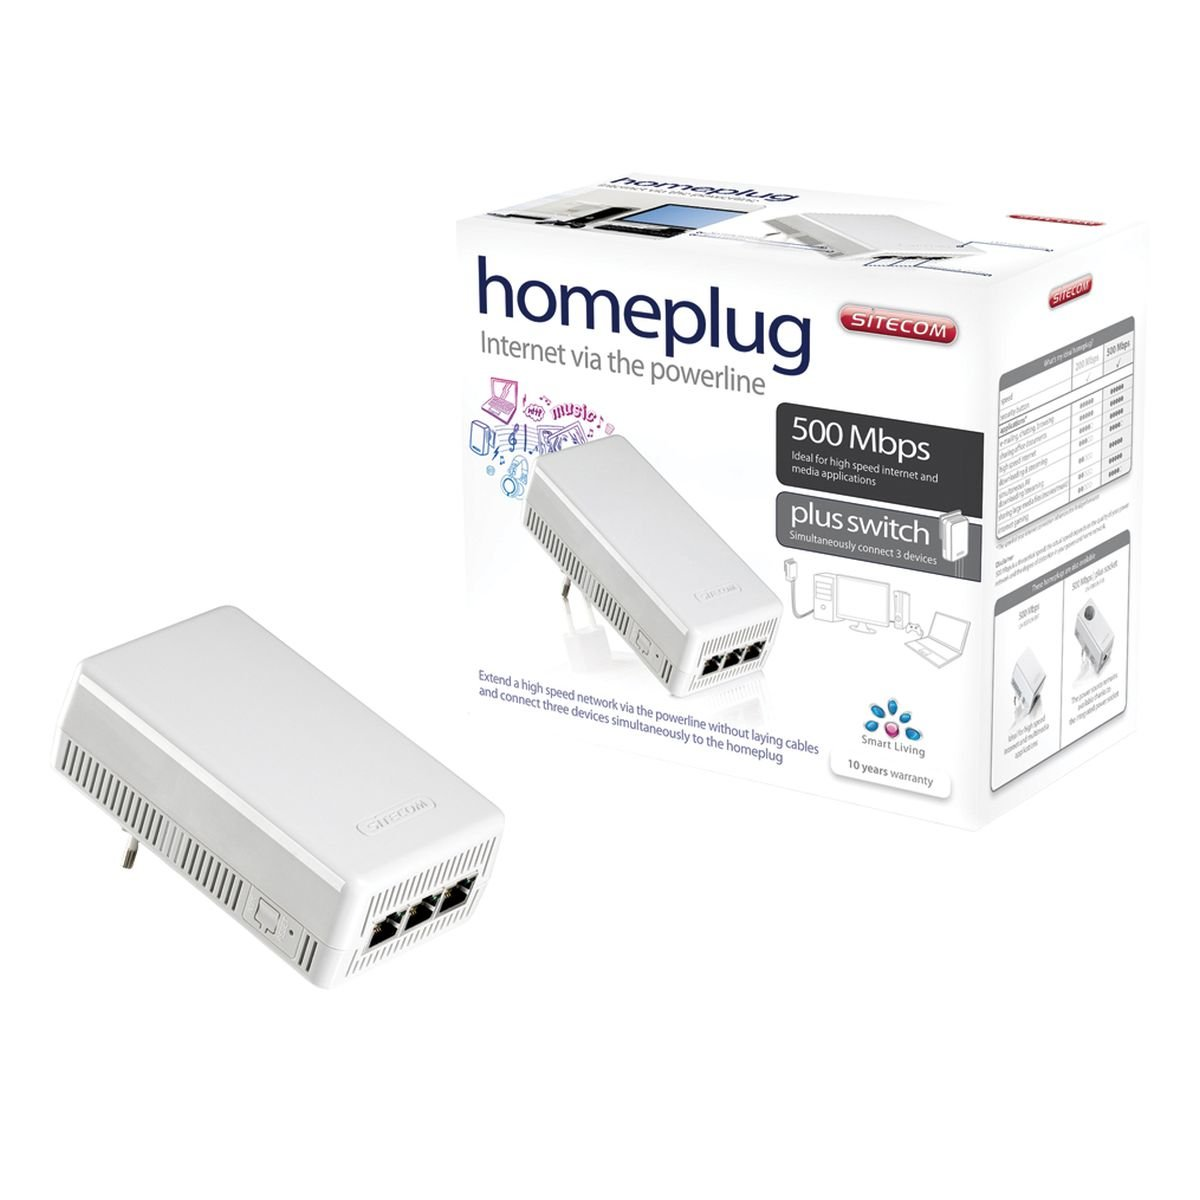 Sitecom Homeplug 500 Mbps plus switch - Accesorio de red (Alá mbrico, RJ-45, Ethernet, 500 Mbit/s, IEEE 802.3, BPSK, QPSK) Color blanco LN-509